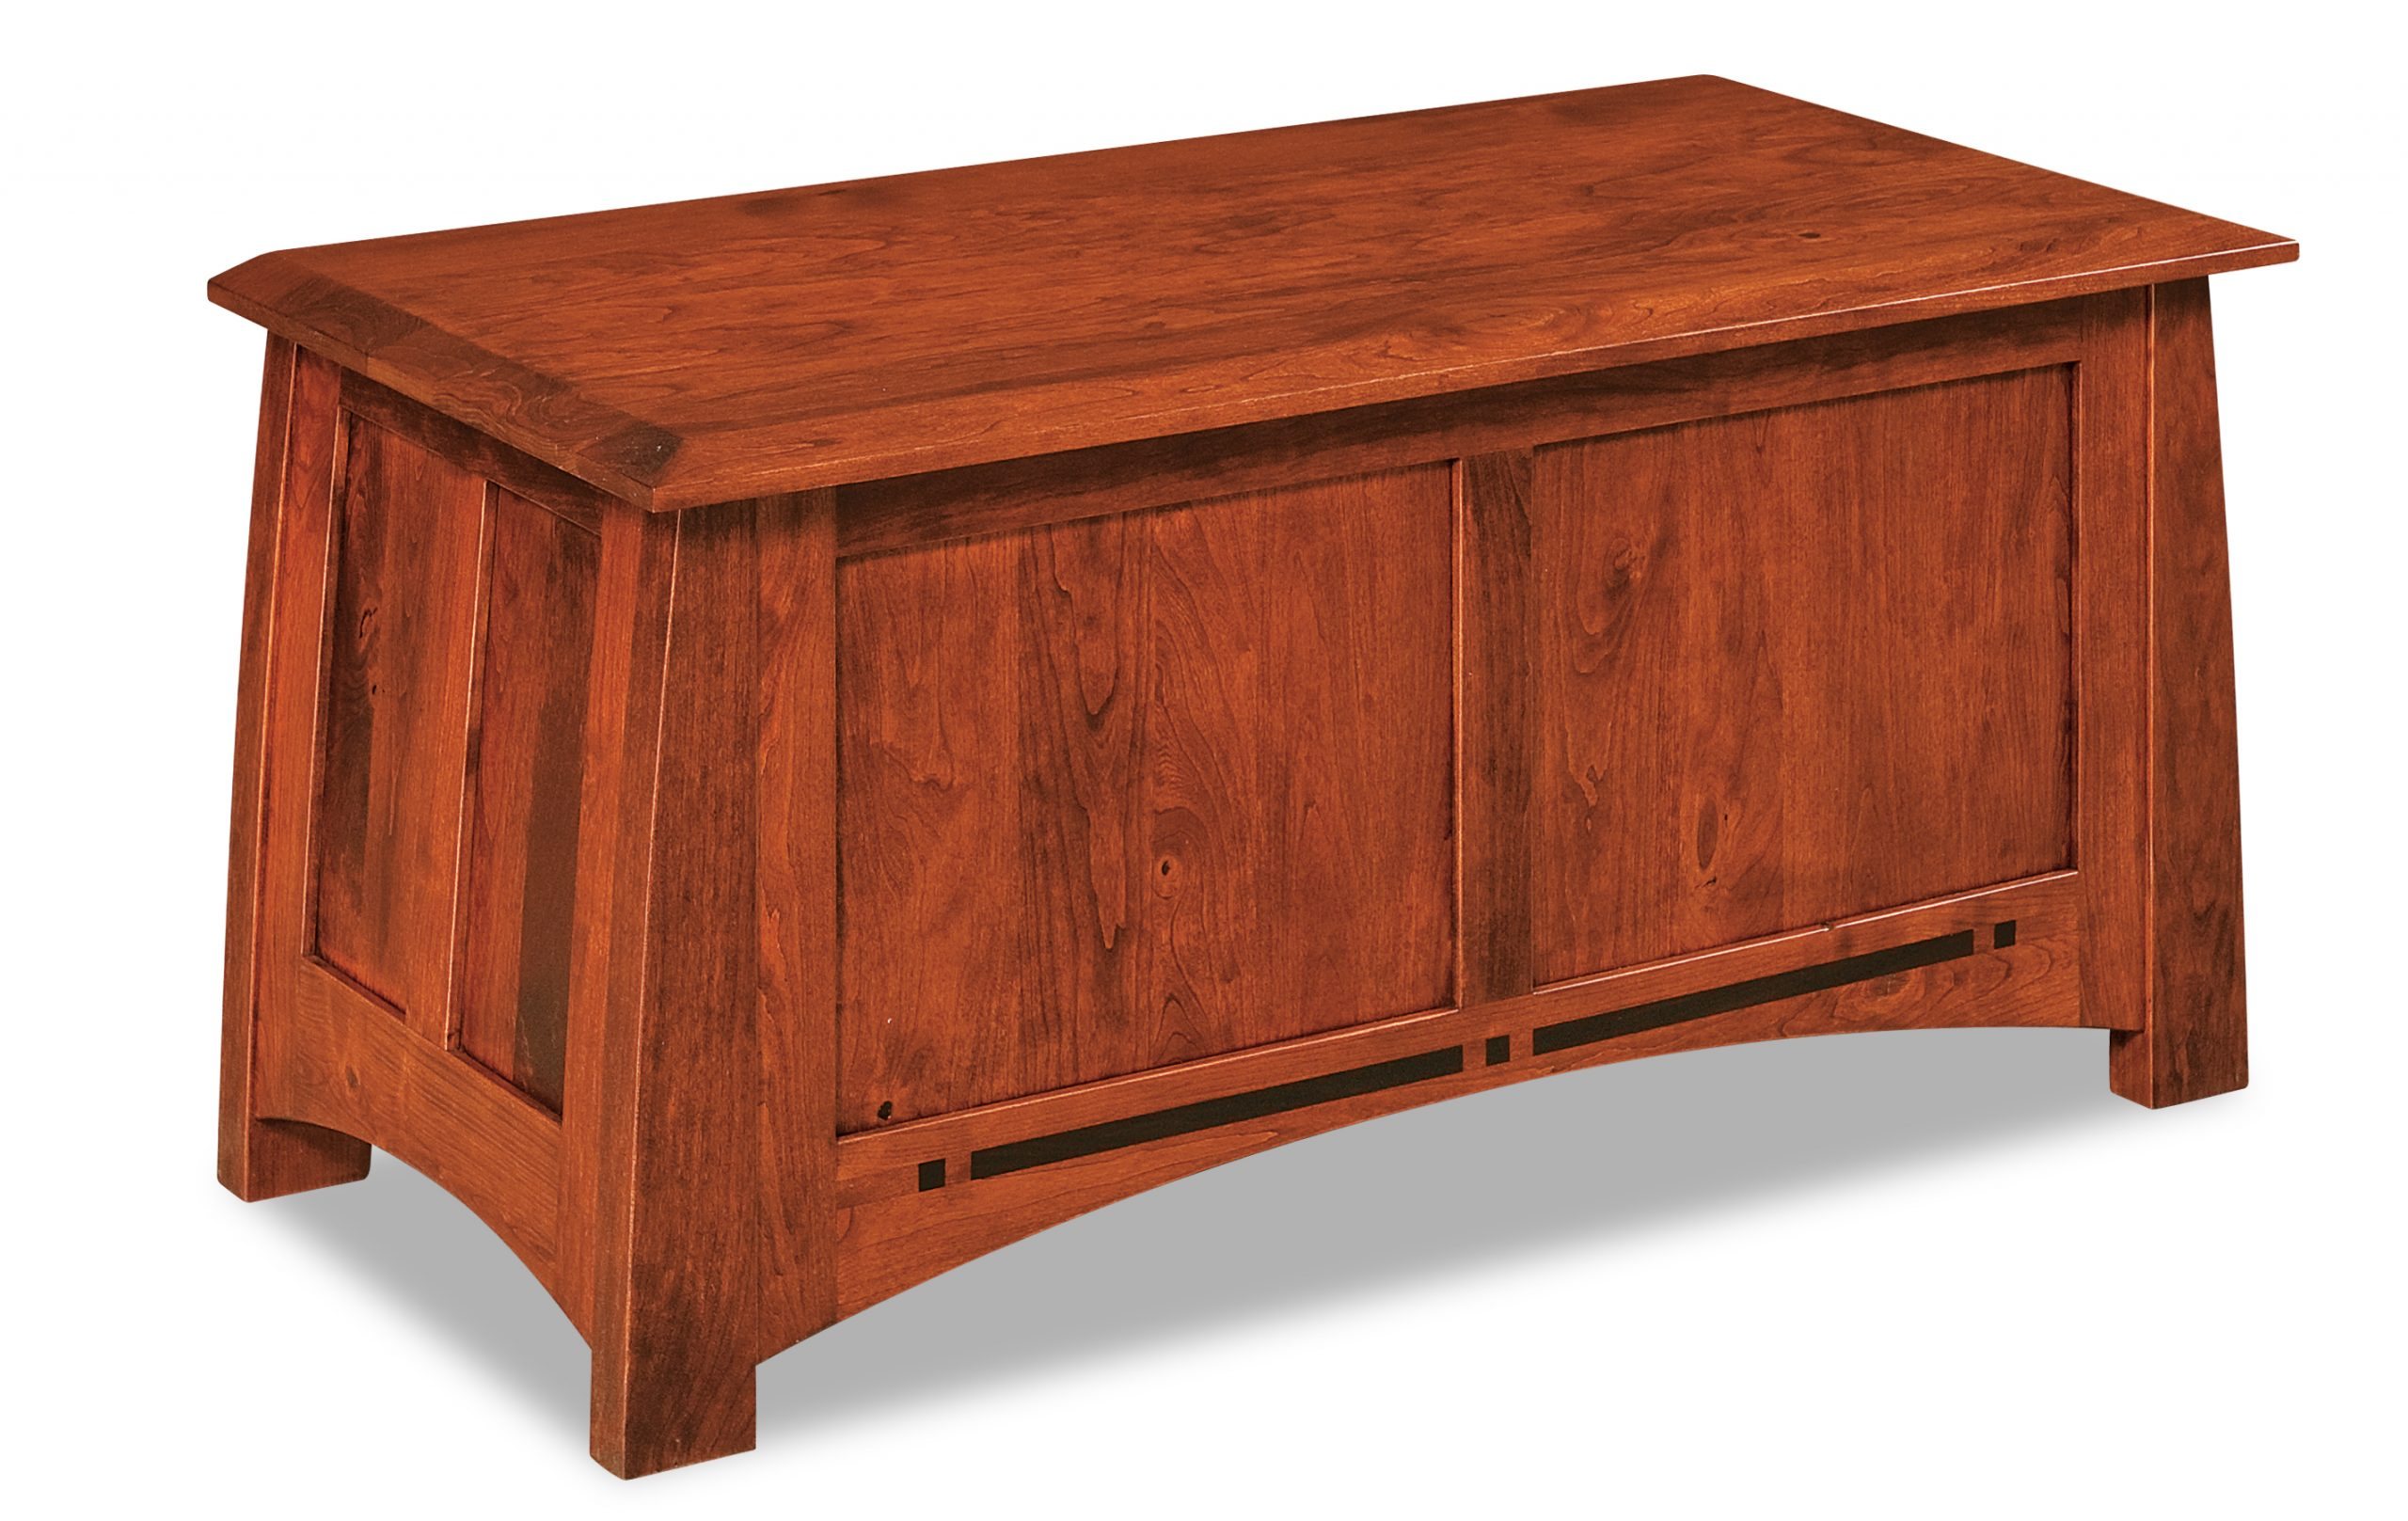 Boulder Creek Blanket Chest